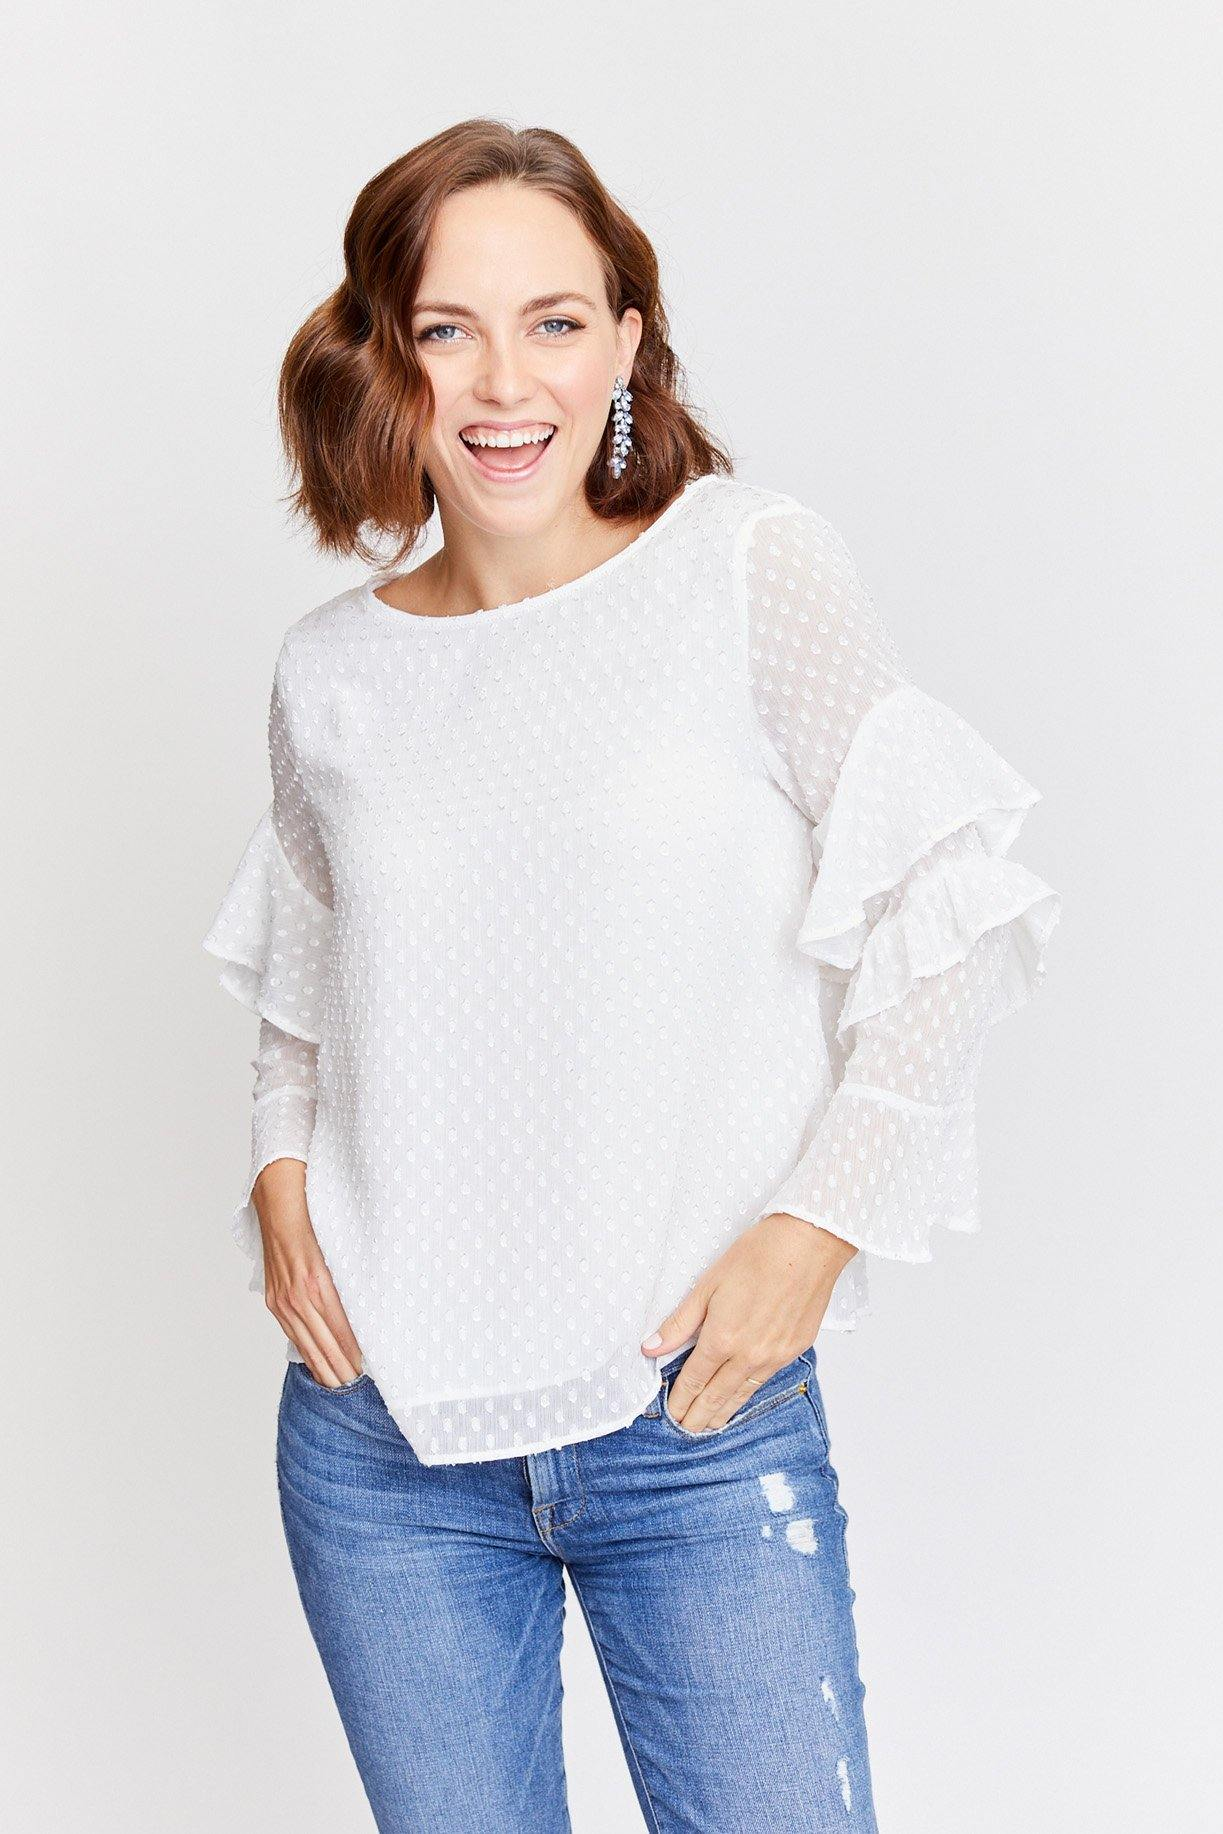 Sanctuary Bianca white ruffle top from Sweet & Spark.